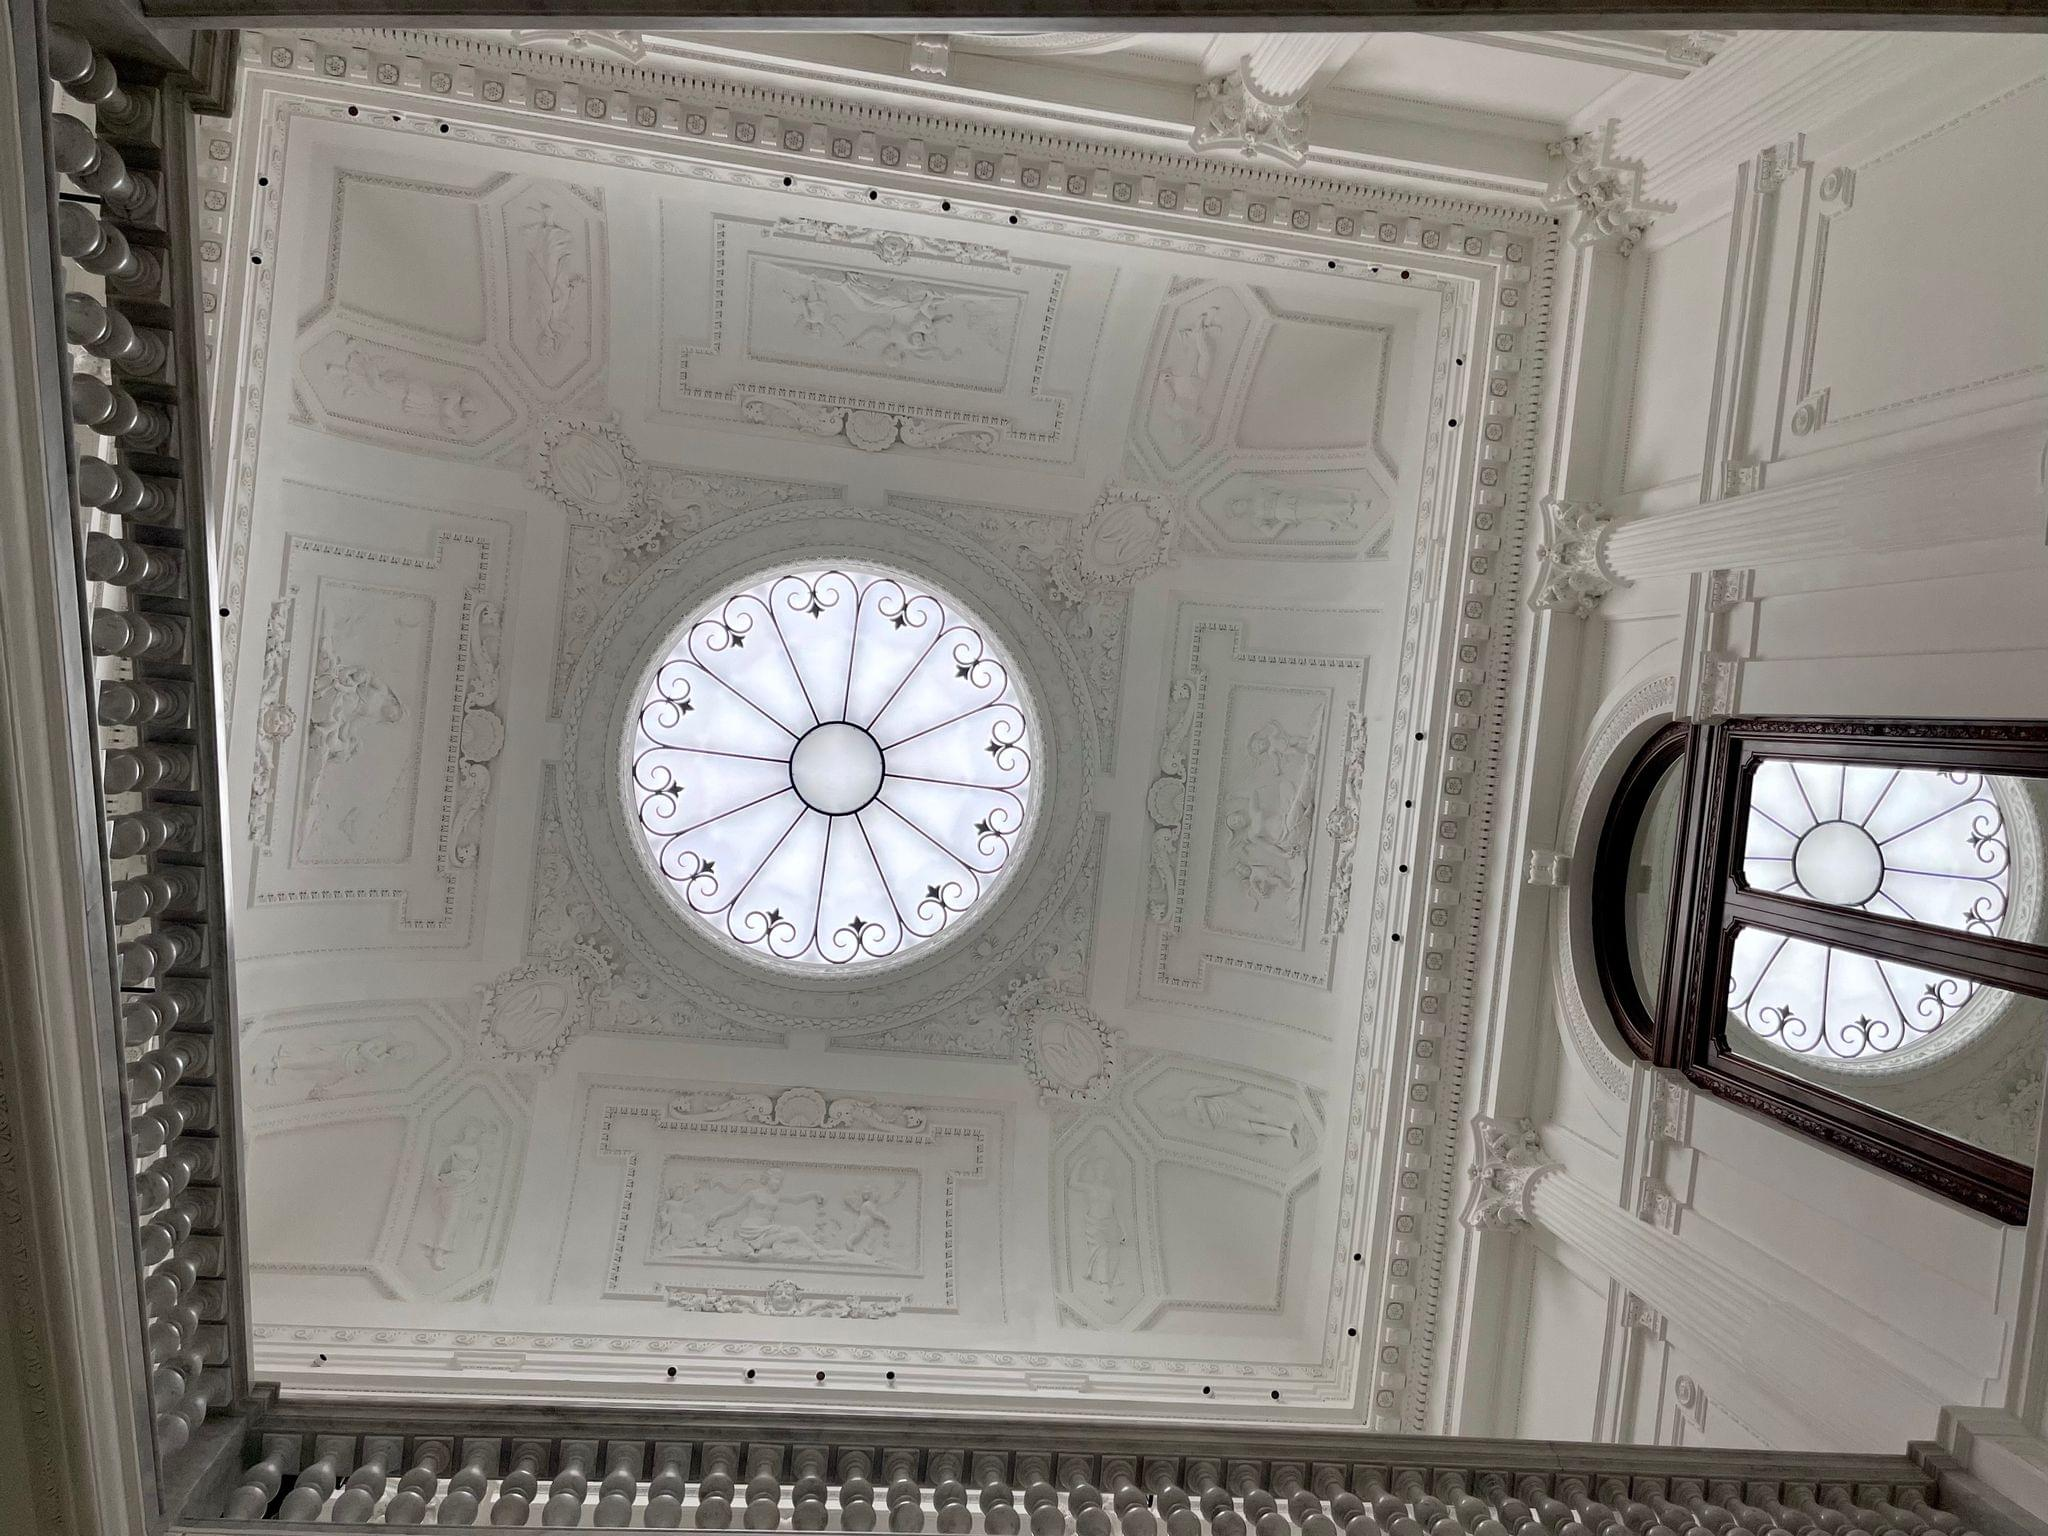 The skylight from below.